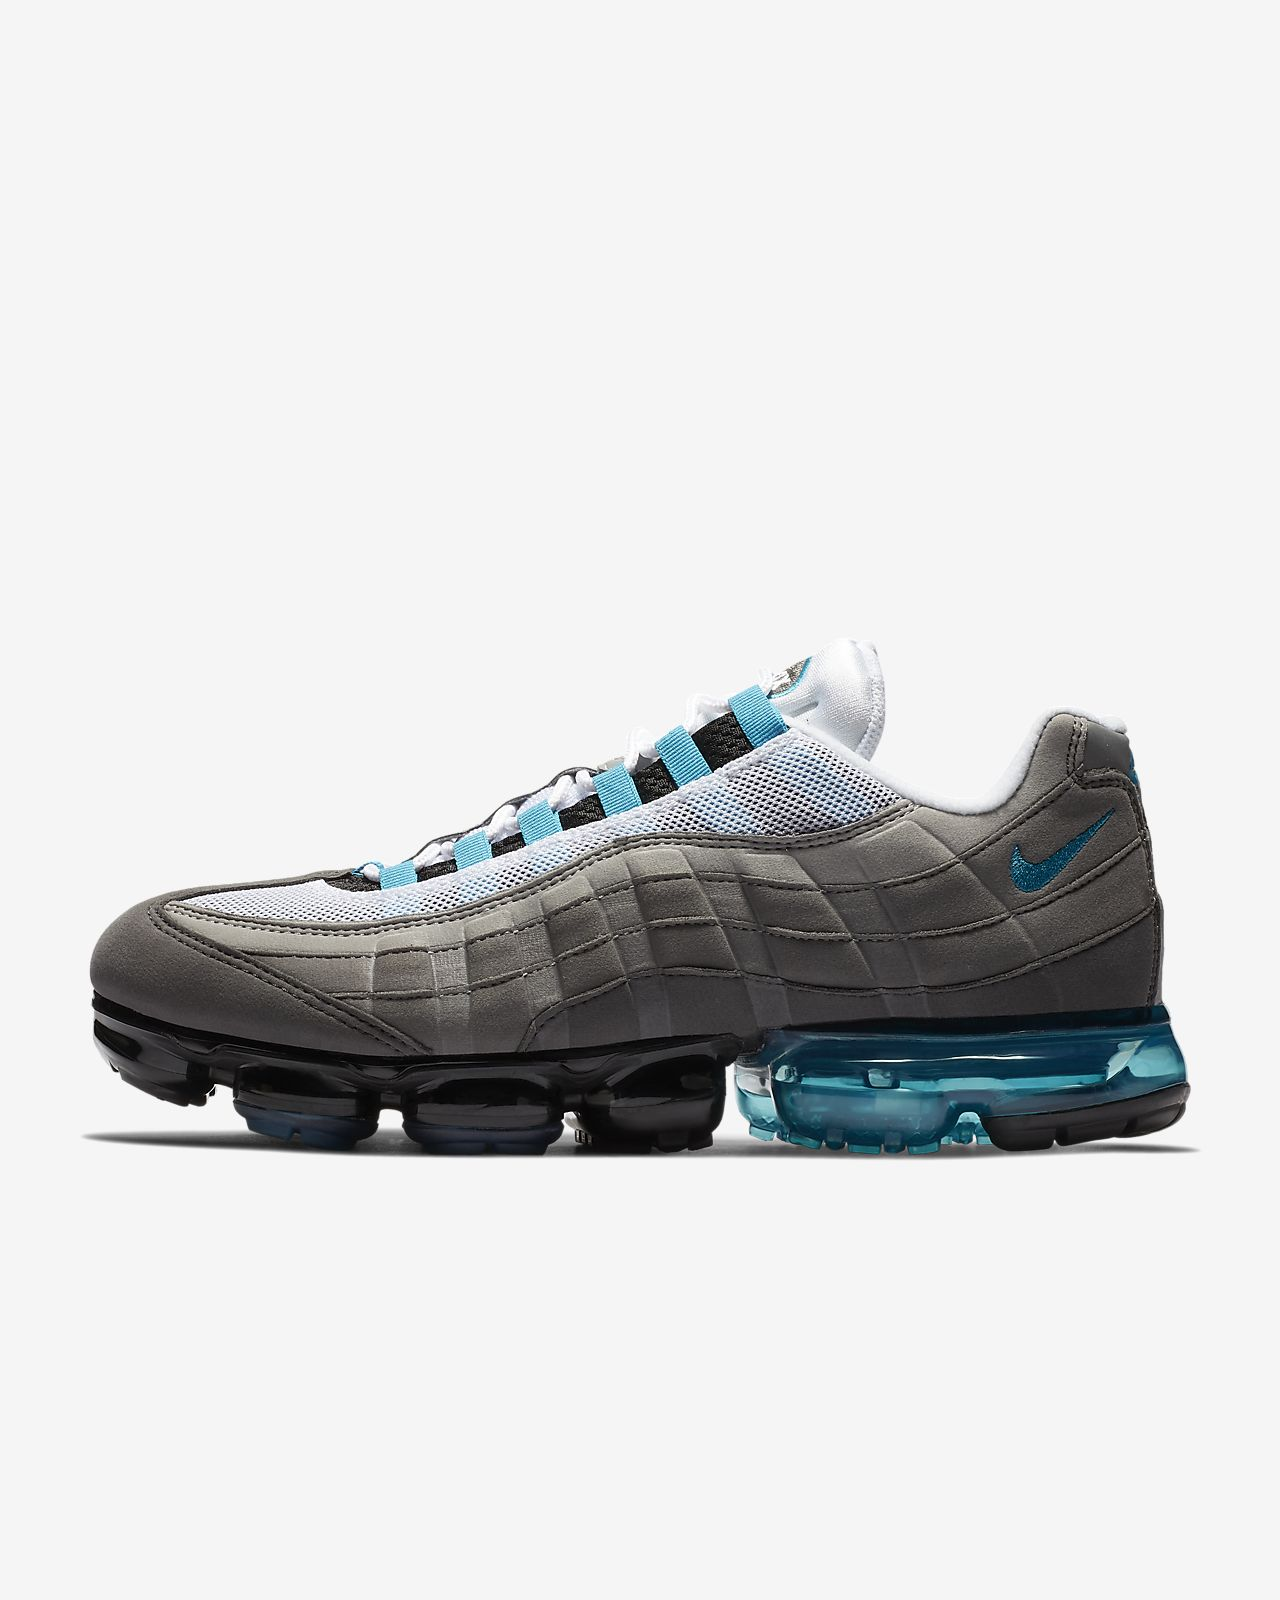 reputable site 87ddb 51db3 ... Chaussure Nike Air VaporMax 95 pour Homme